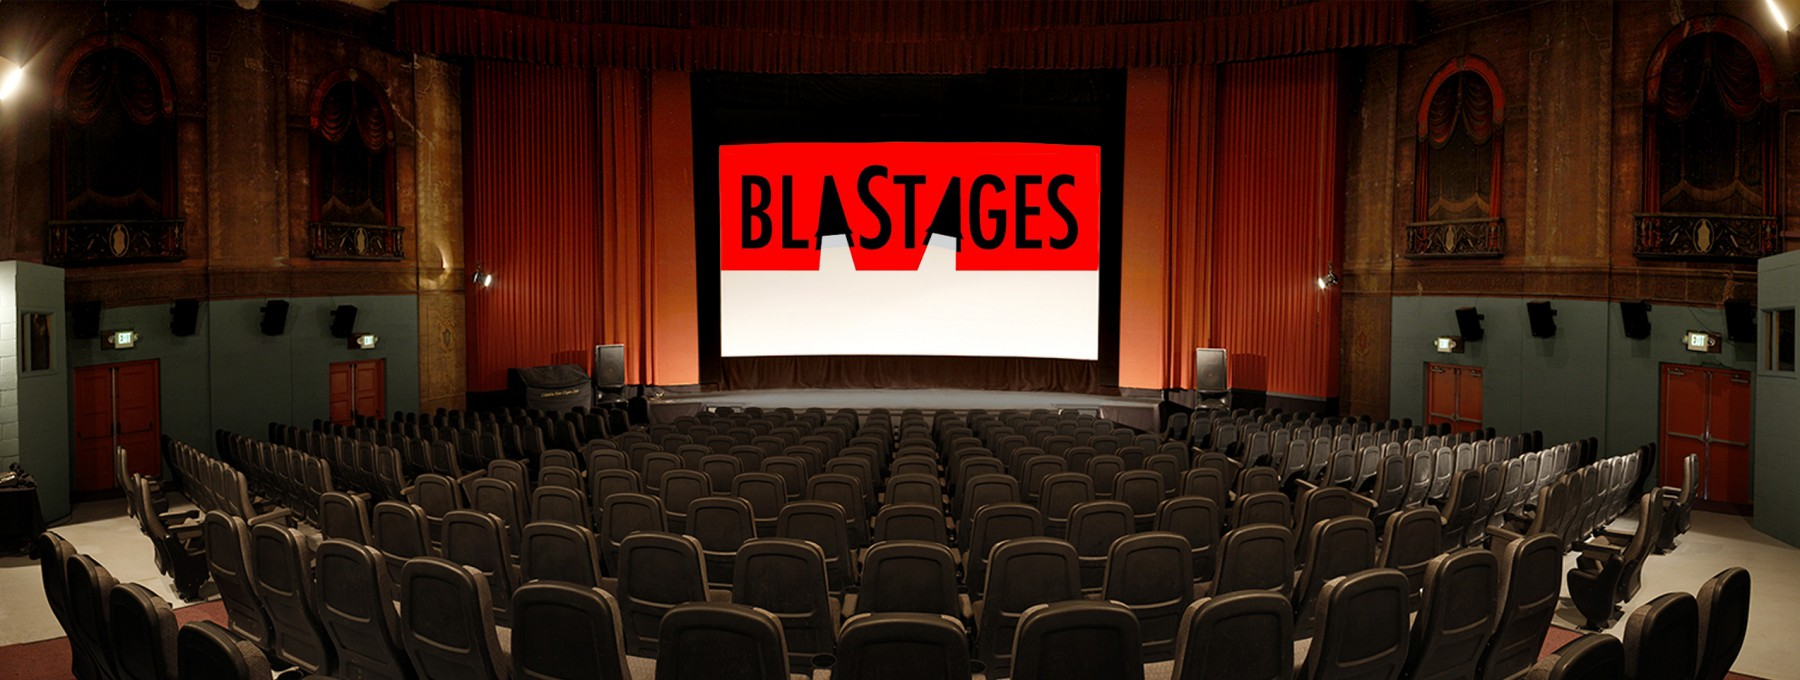 Bla Stages